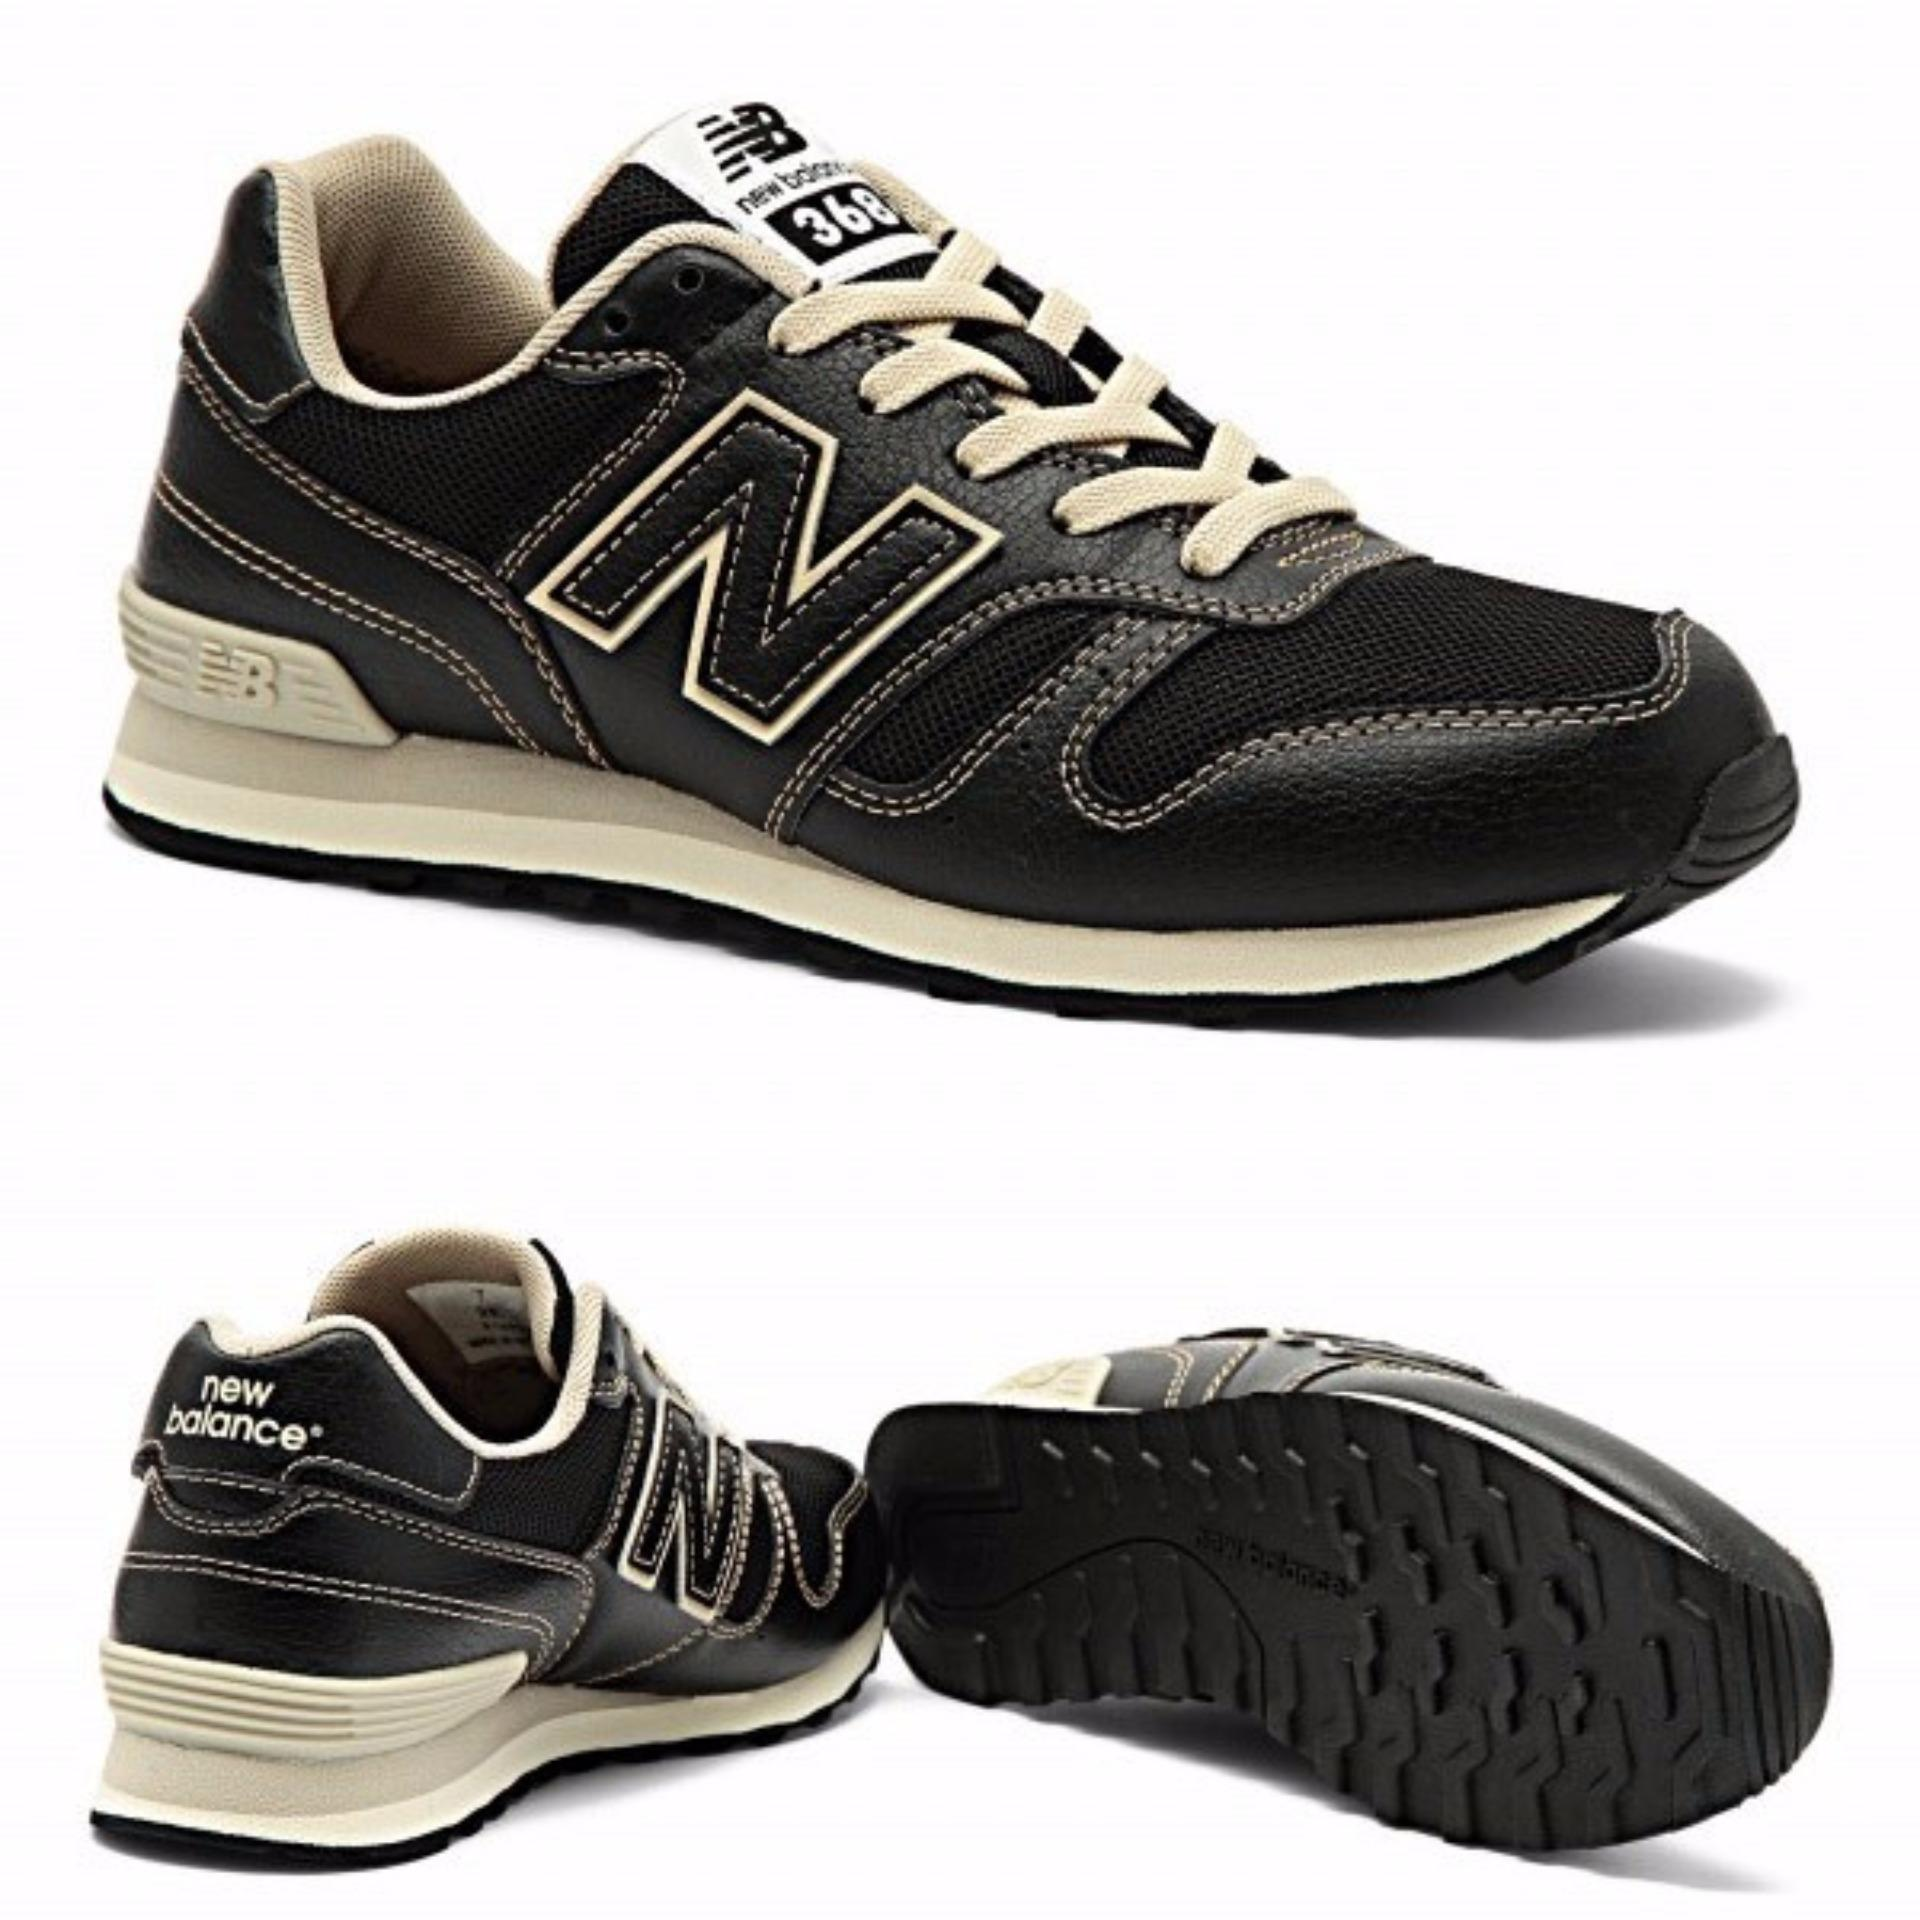 Harga New Balance 368 Sneakers Black W368Jbk New Balance Asli